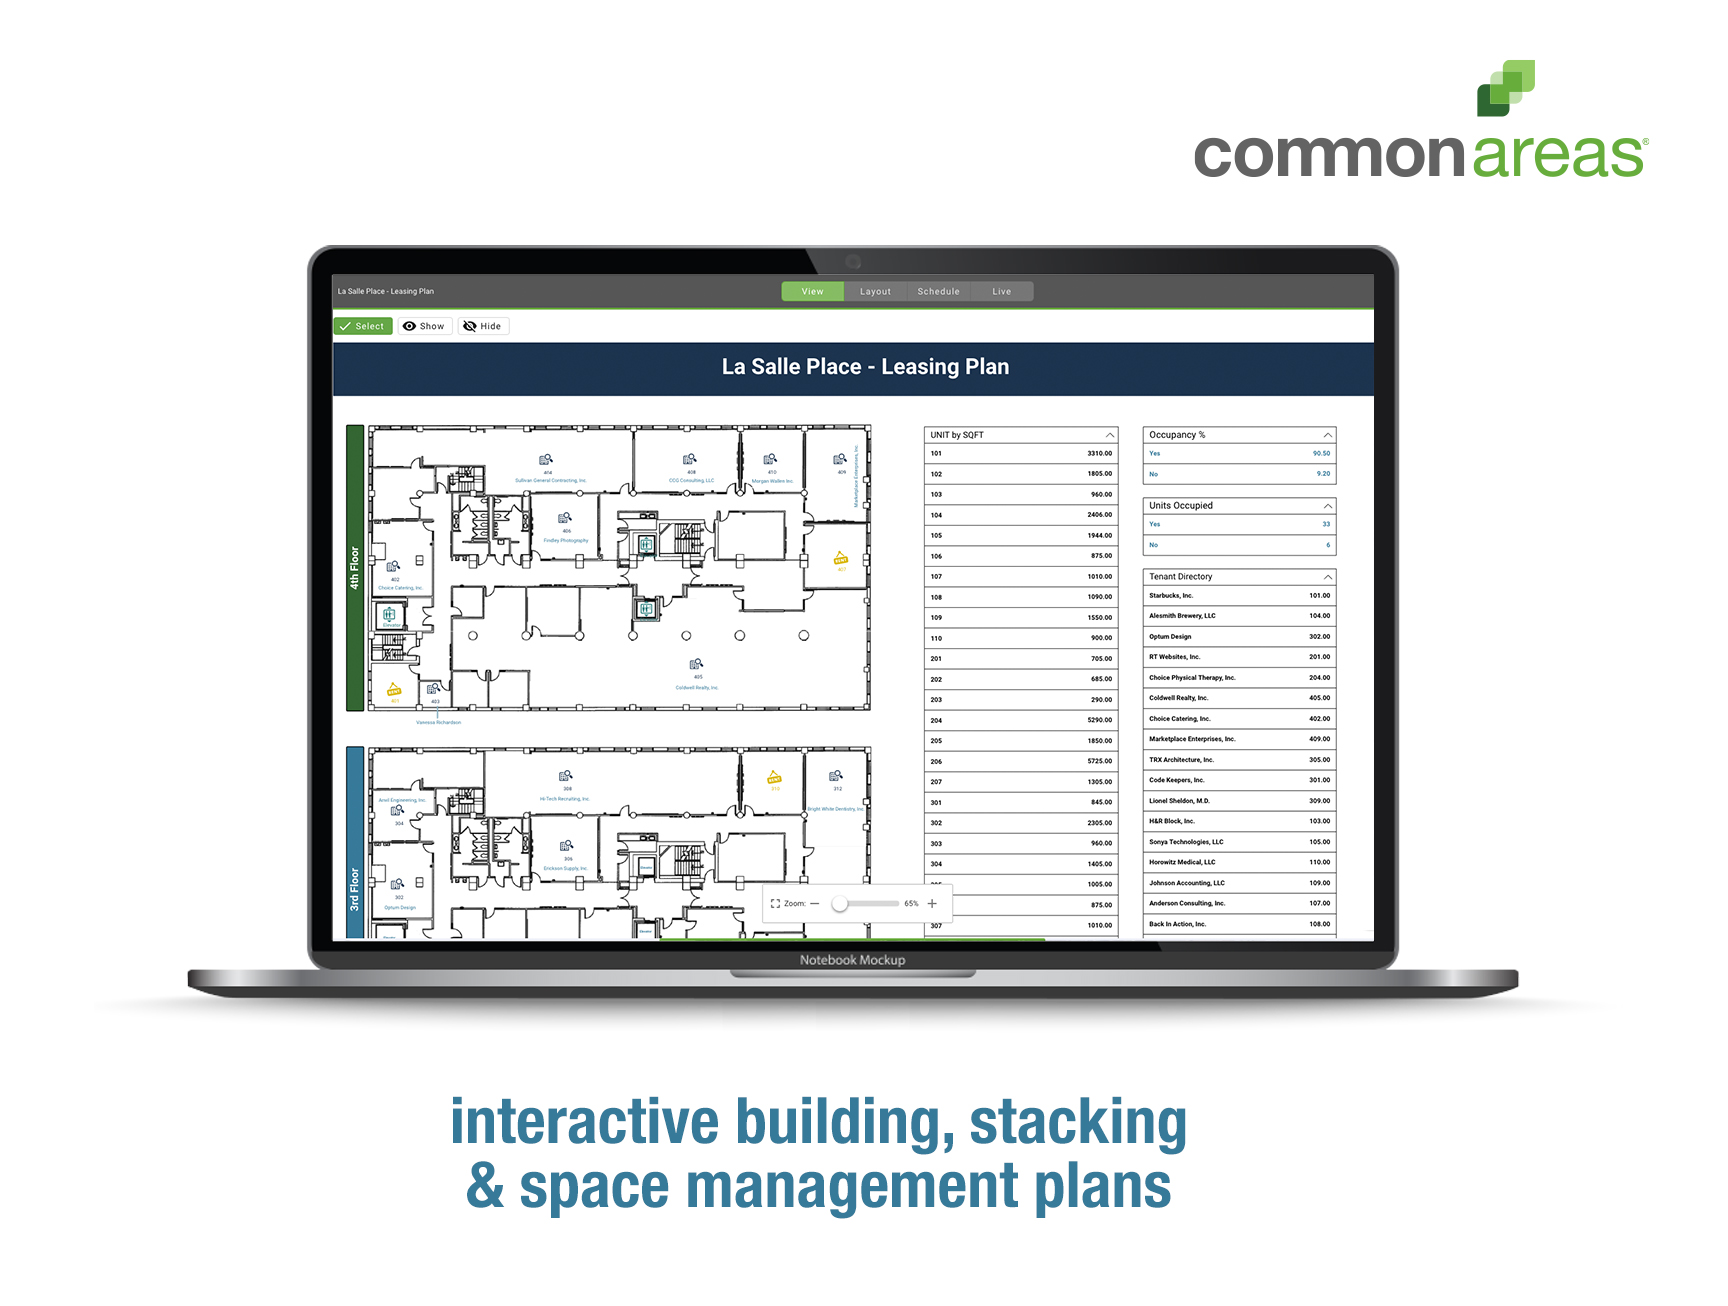 Visualize and interact with your plans more effectively. Using data collected during design and construction, tenant leasing, vendor management, and routine site visits, easily plot everyone and everything on a set of interactive plans.